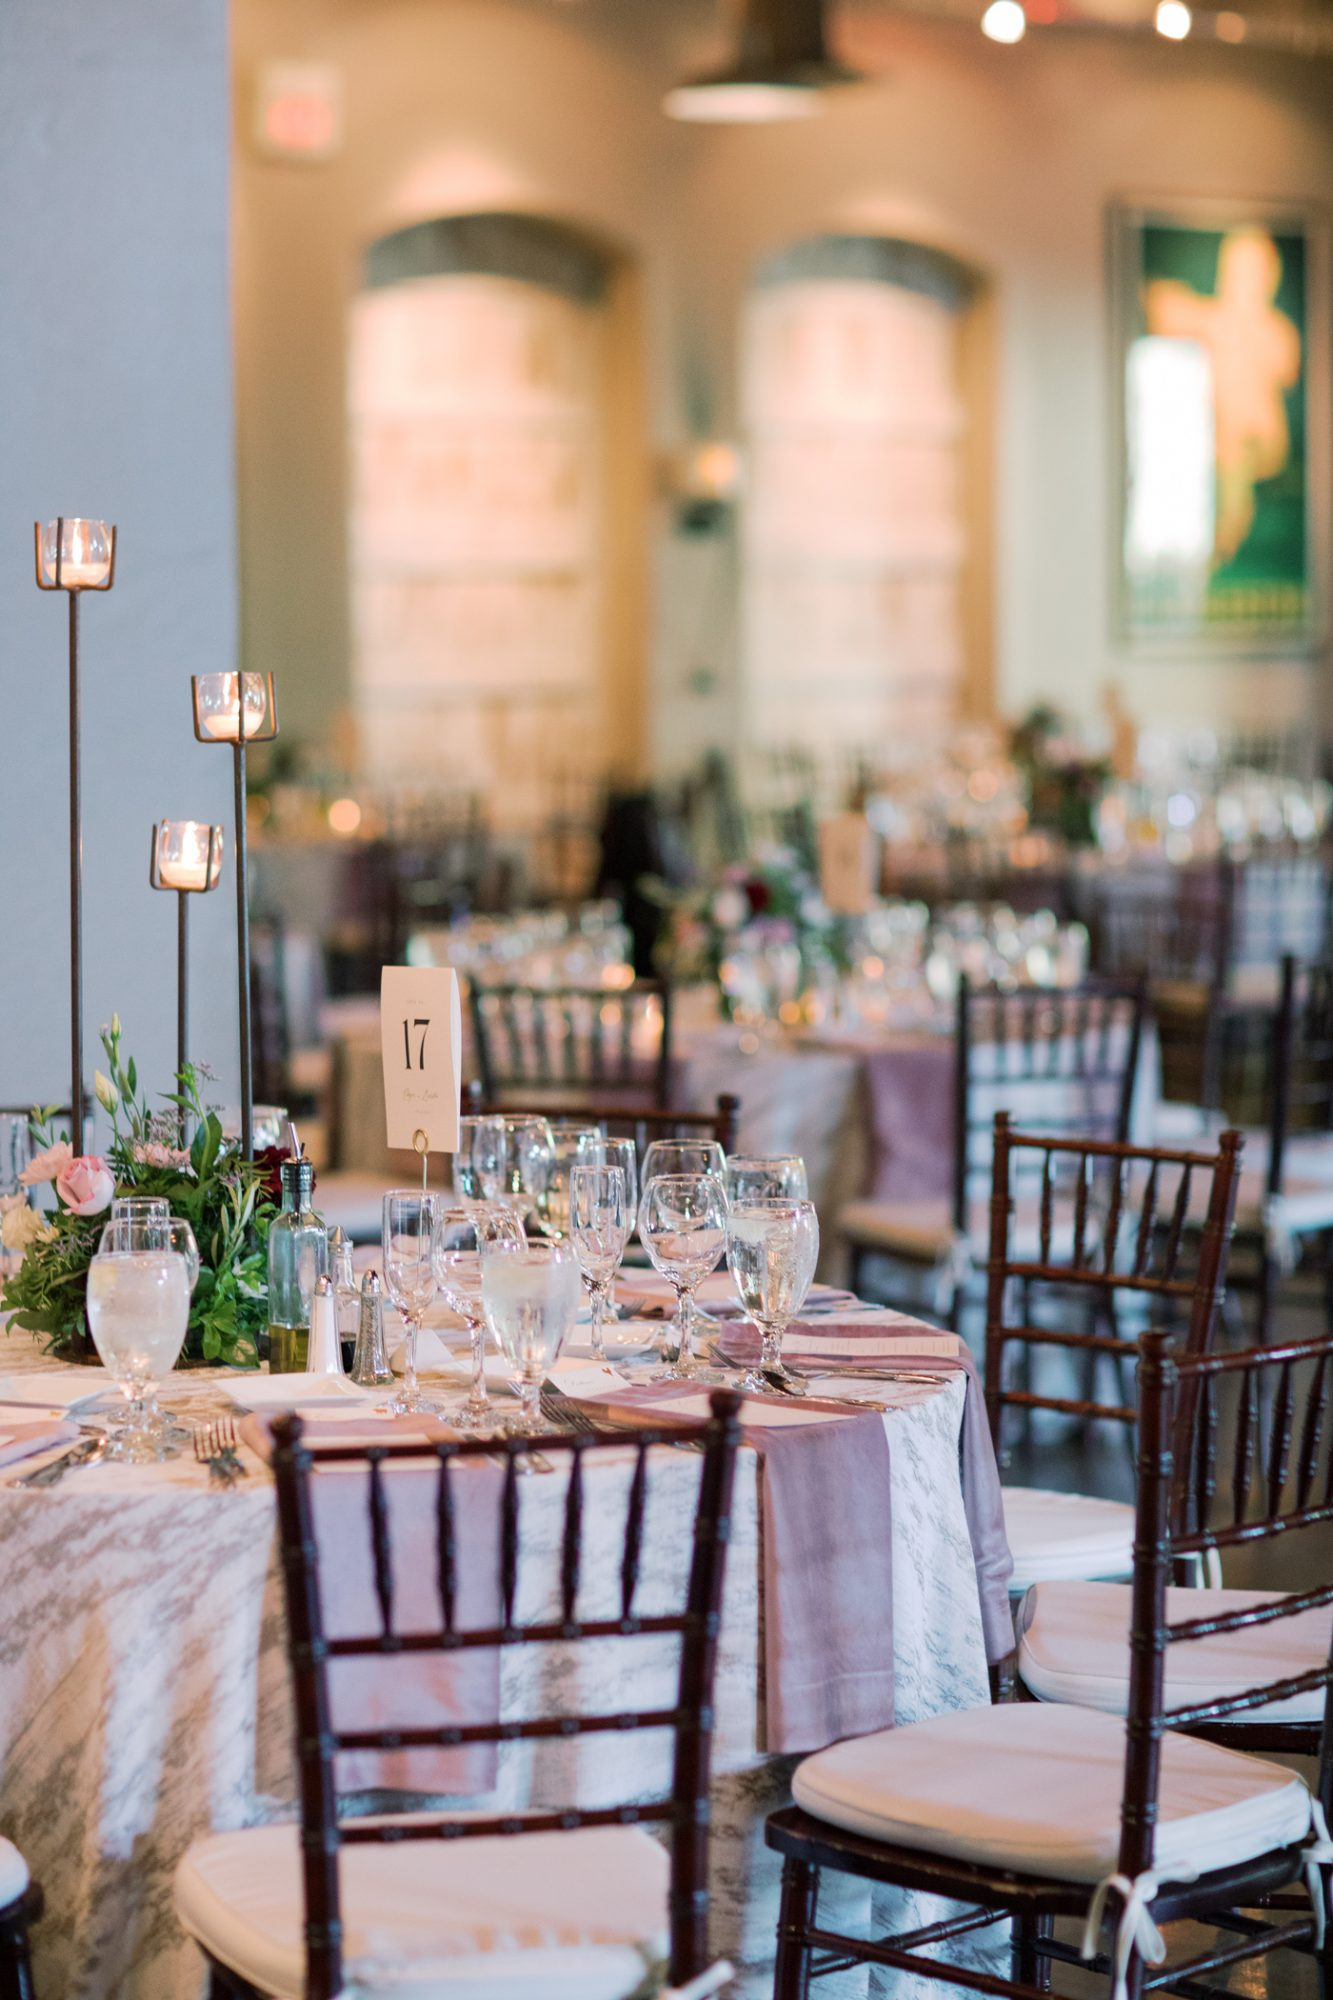 wedding reception tables with place settings